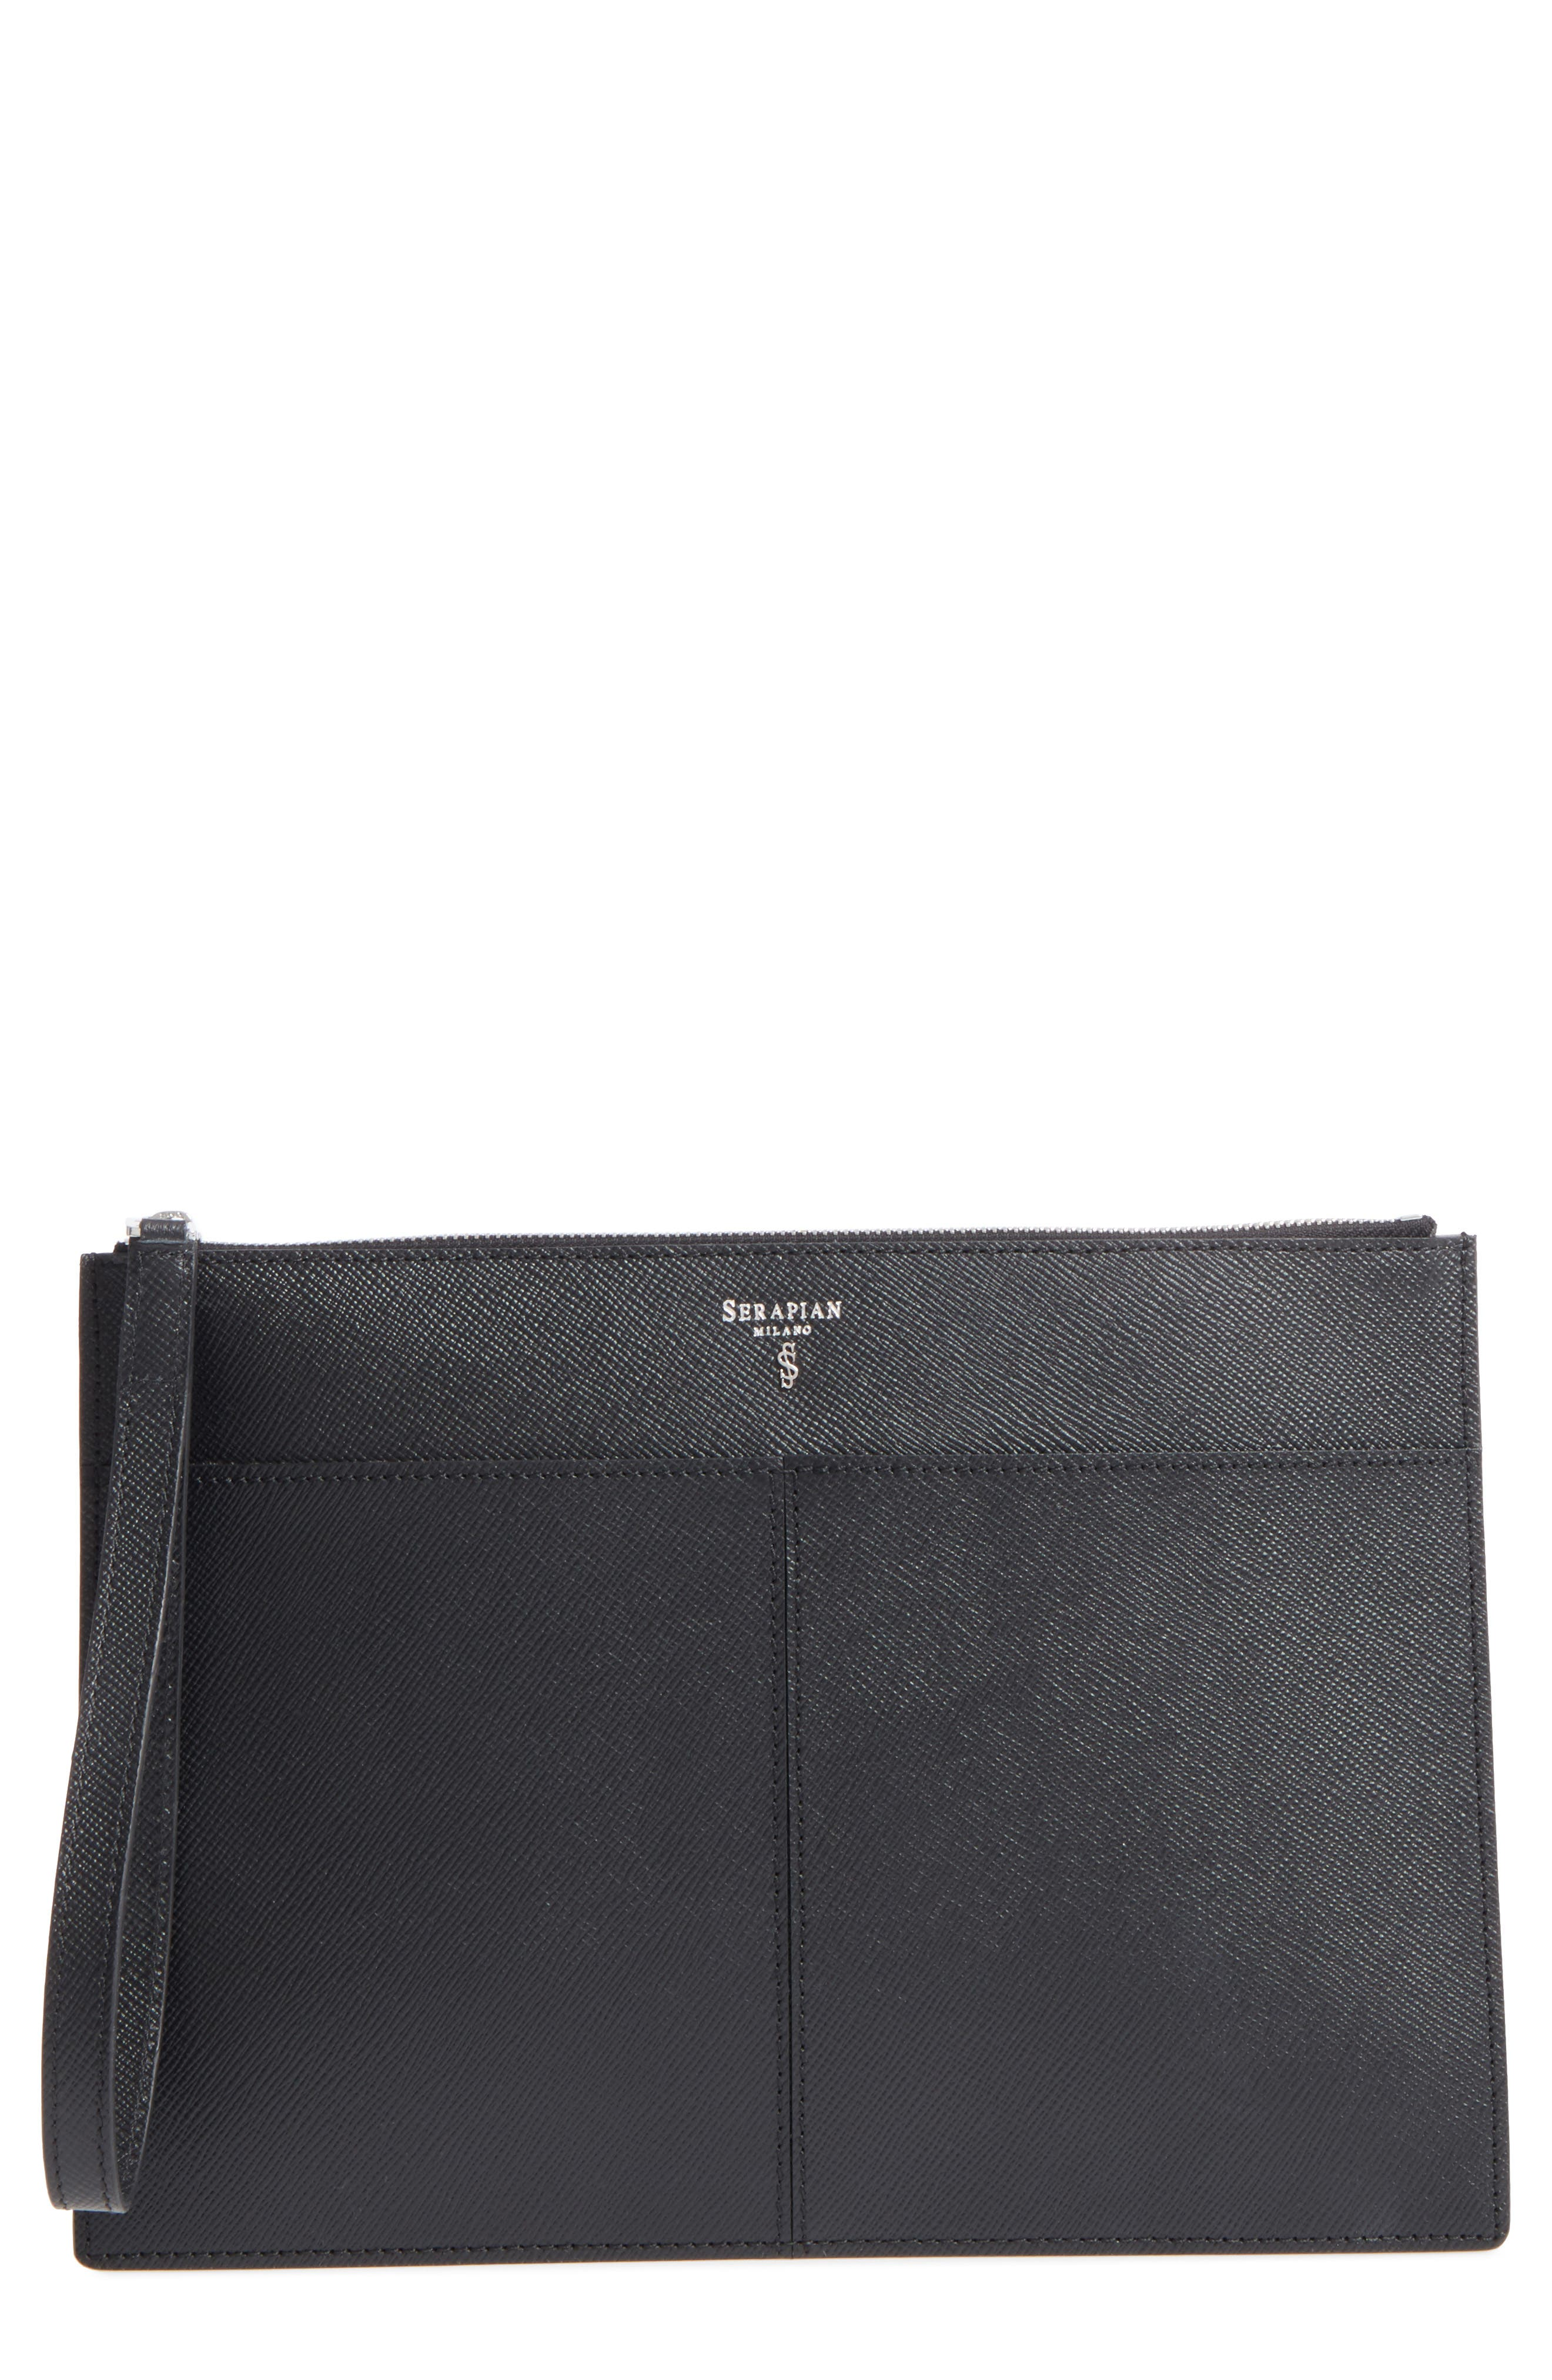 Main Image - Serapian Milano Evolution Leather Clutch